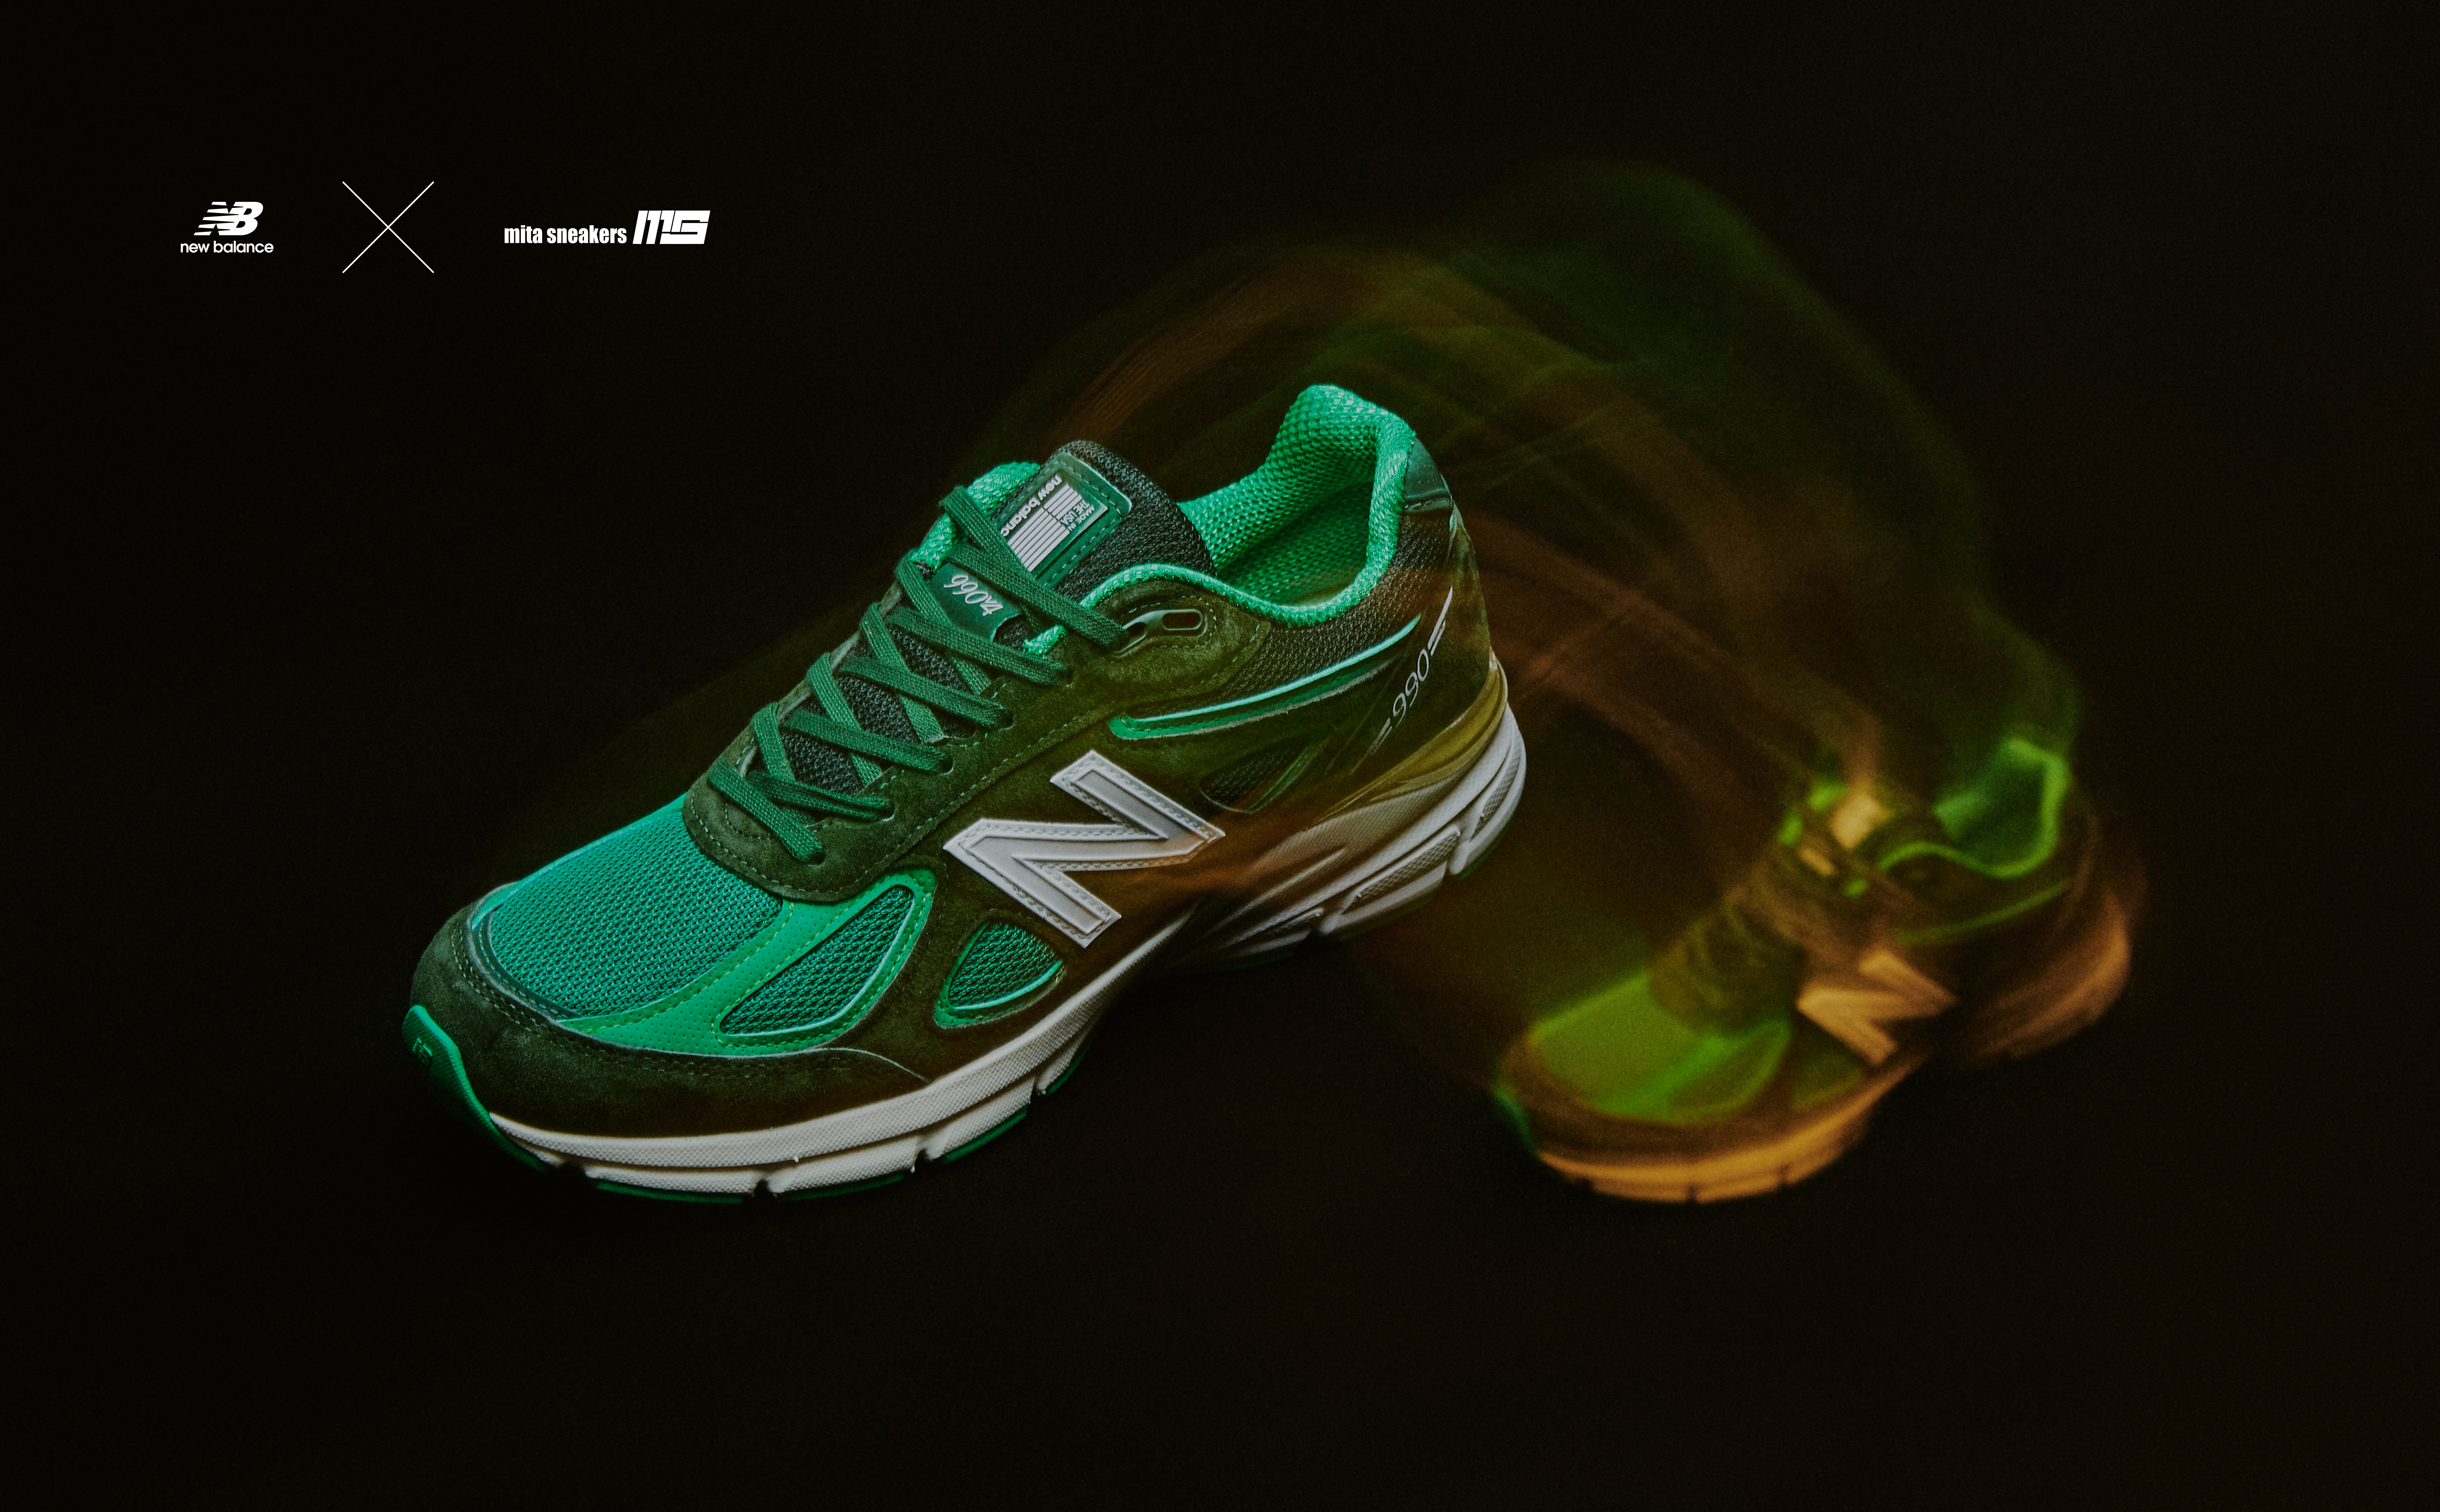 """MITA SNEAKERS X NEW BALANCE M990 V4 made in U.S.A. """"Bouncing frog"""""""